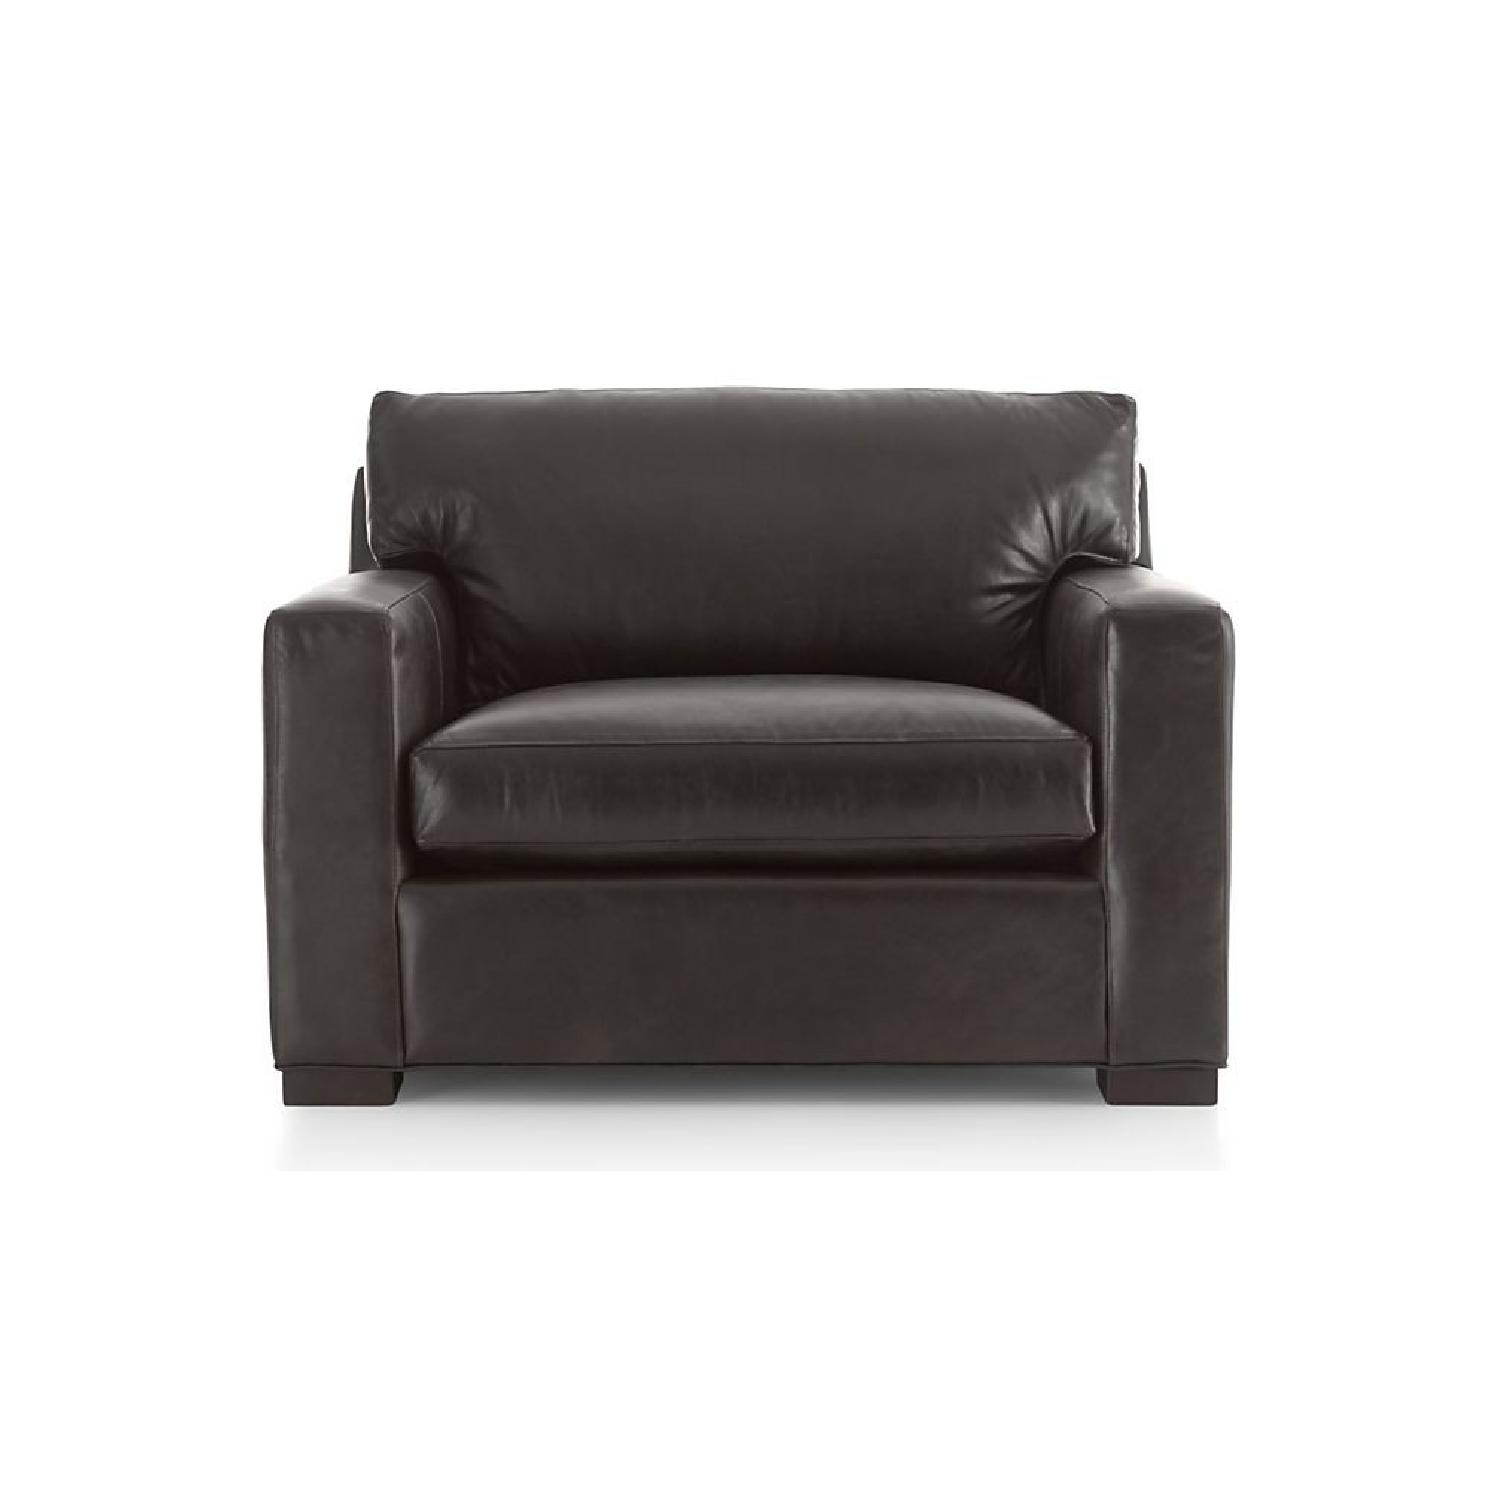 Crate and Barrel Axis Couch | Crate and Barrell Couch | Crate and Barrel Couch